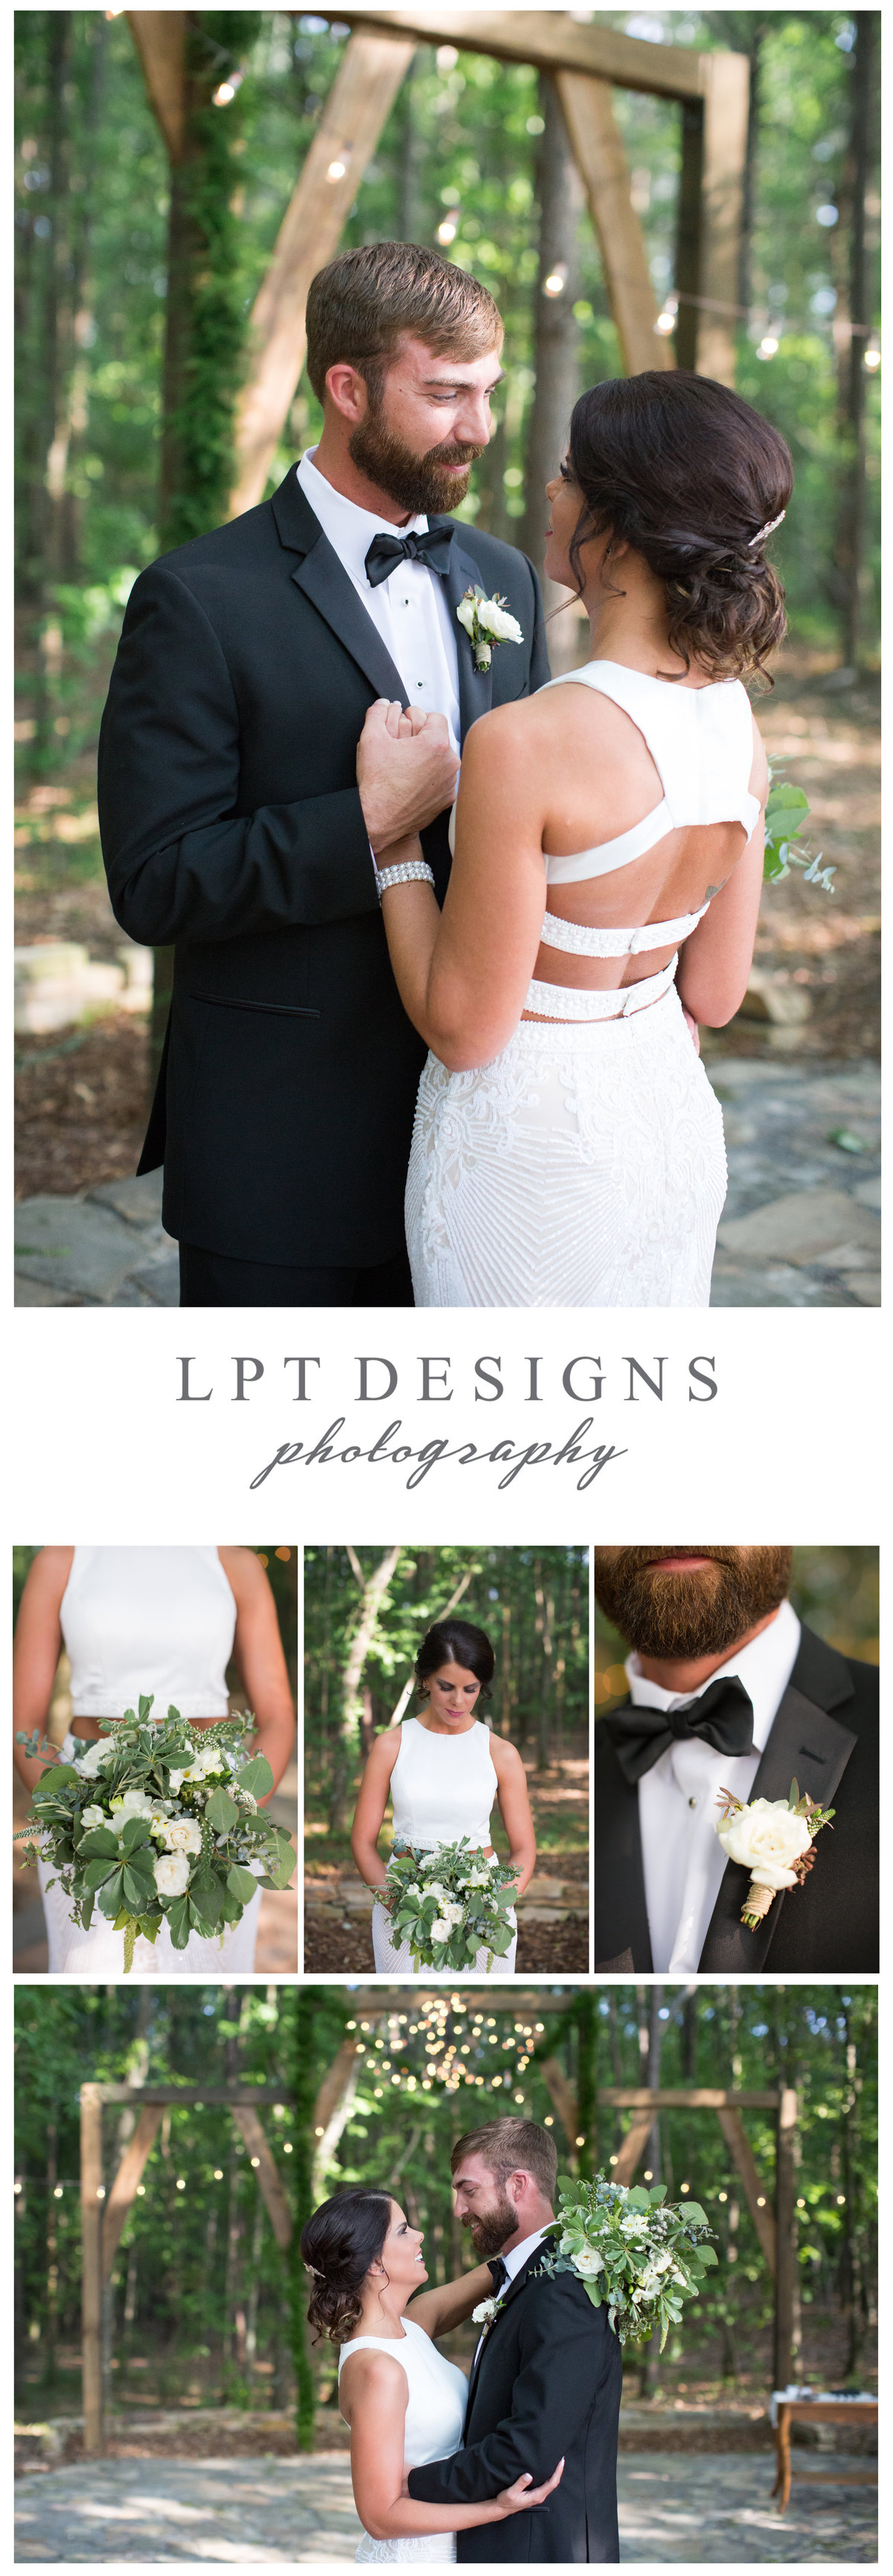 LPT Designs Photography Lydia Thrift Gadsden Alabama Fine Art Wedding Photographer KZ 1